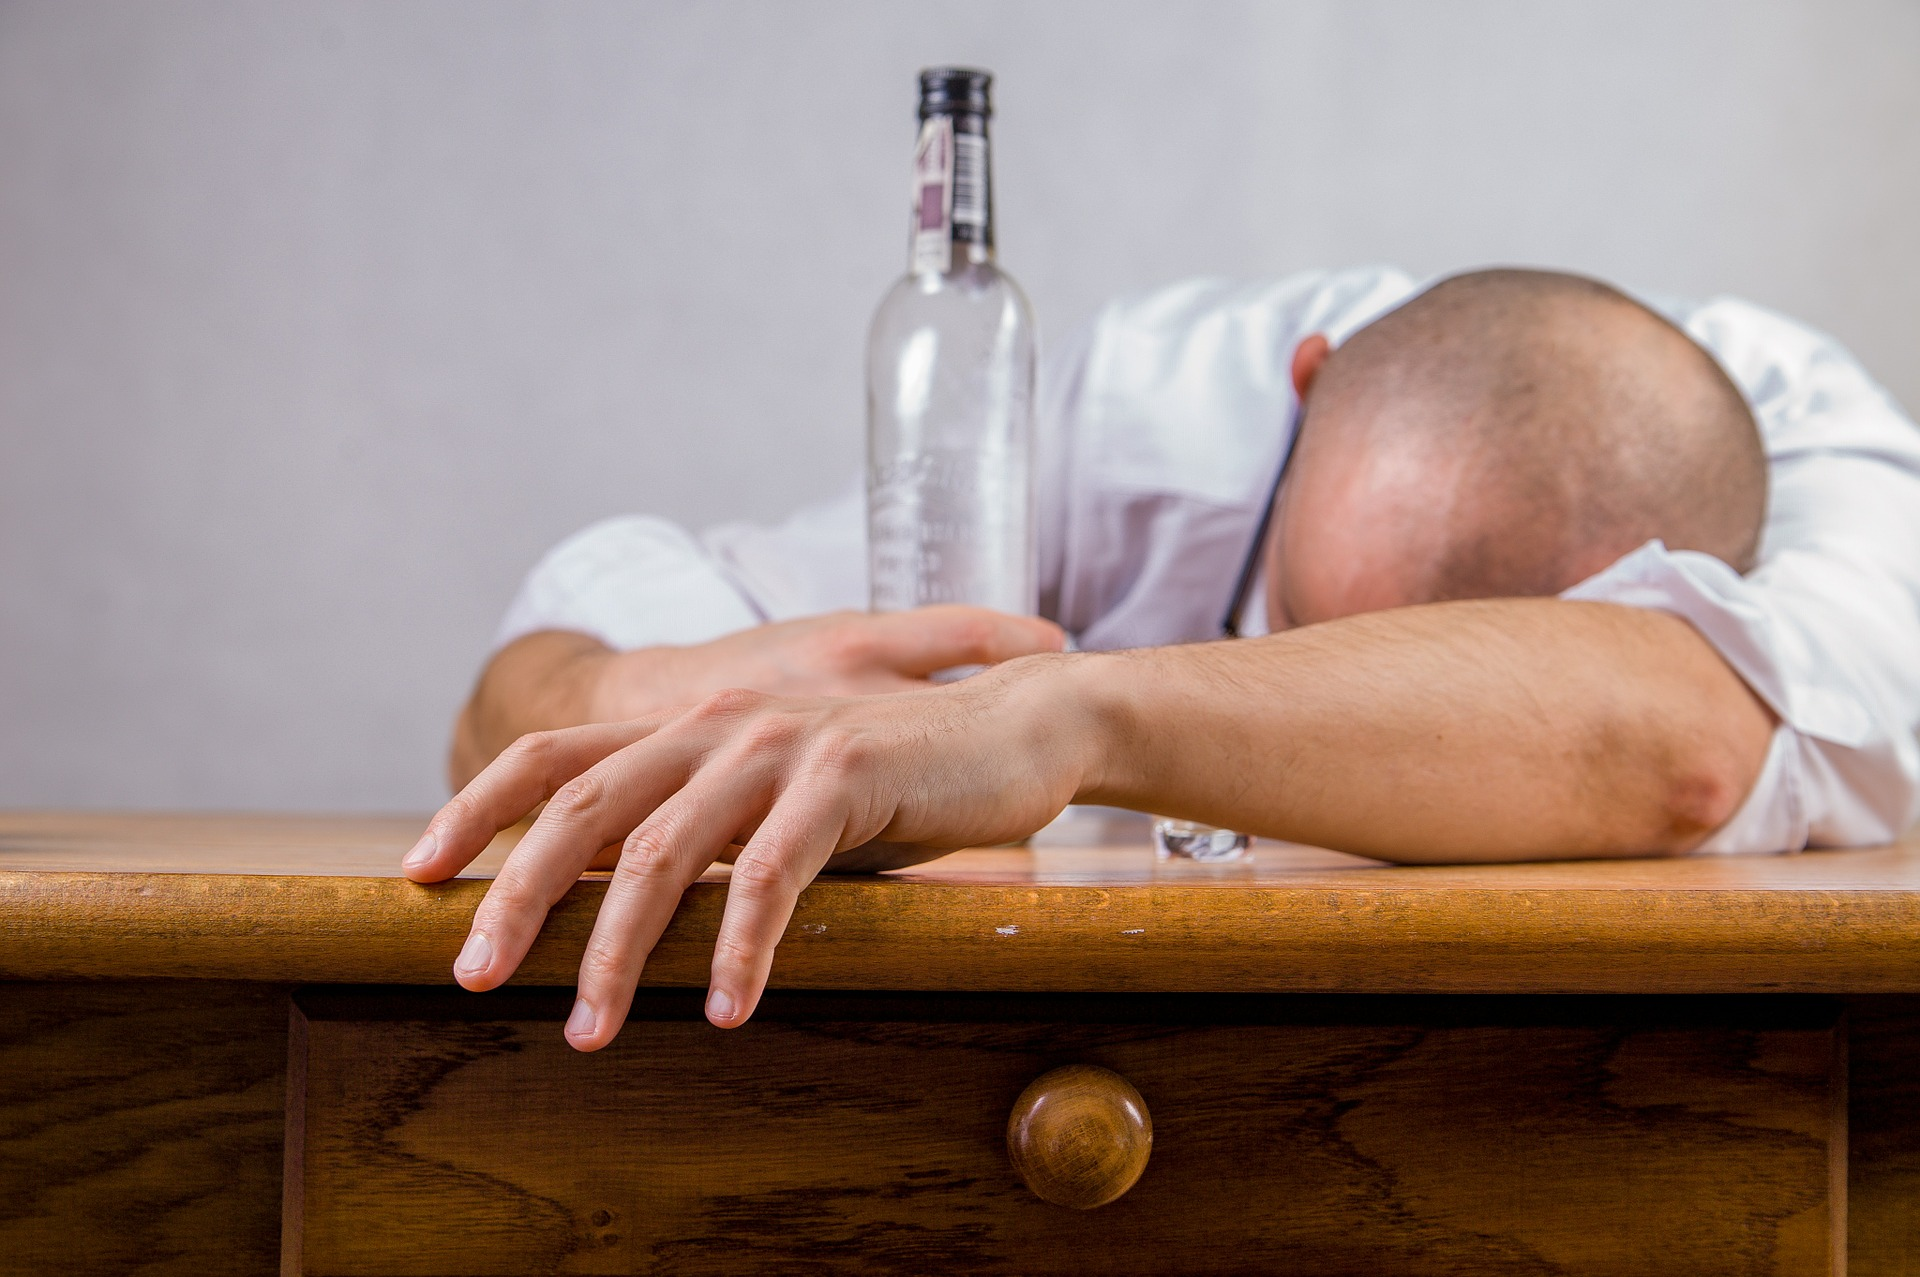 Man Passed Out Drunk Image